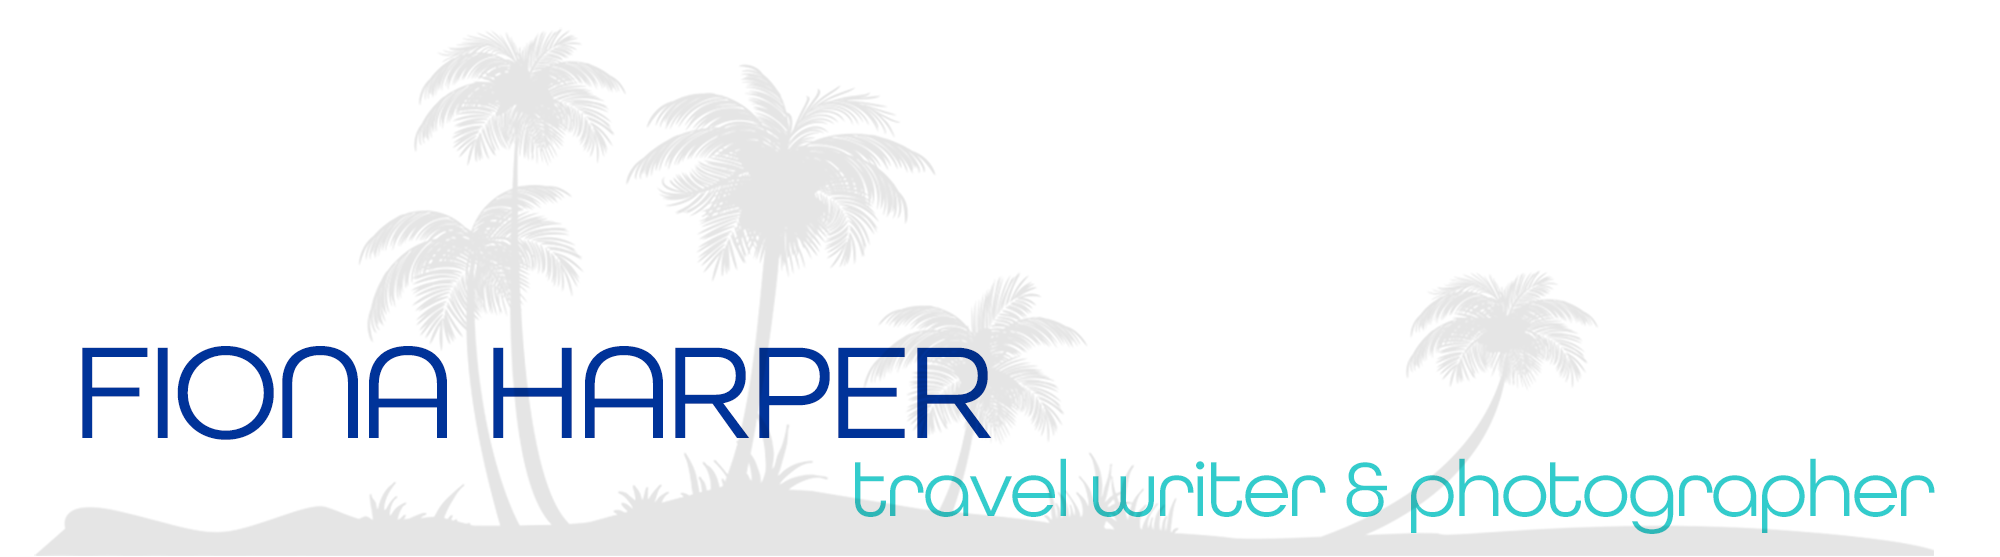 Fiona Harper travel writer and photographer| content creator  | digital travel editor